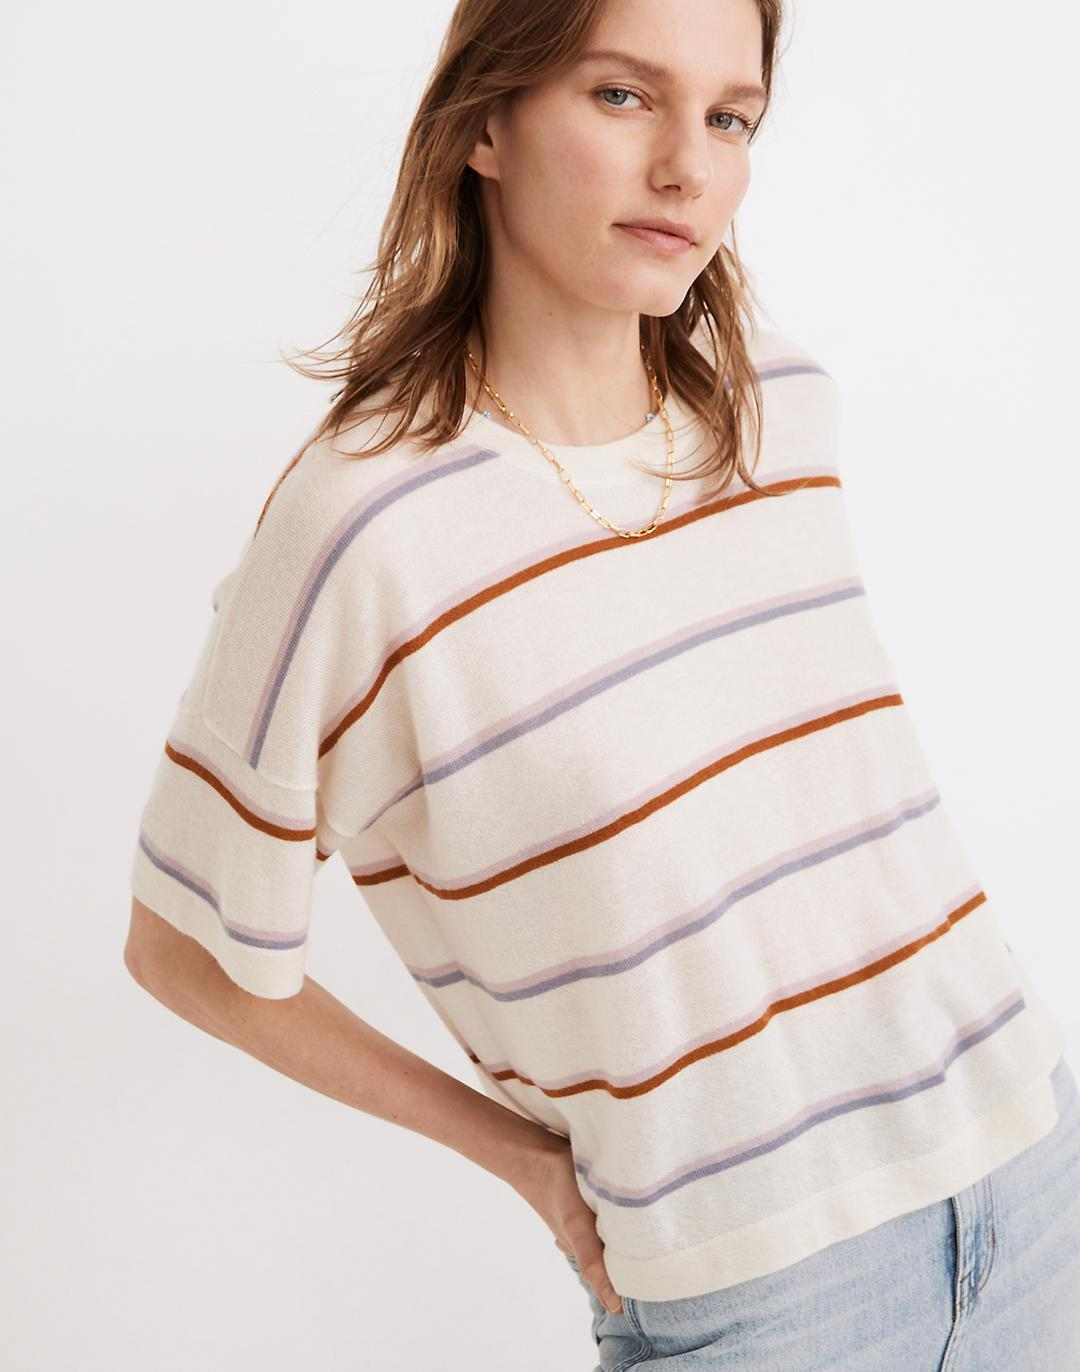 (Re)sponsible Weightless Cashmere Sweater Tee in Adler Stripe